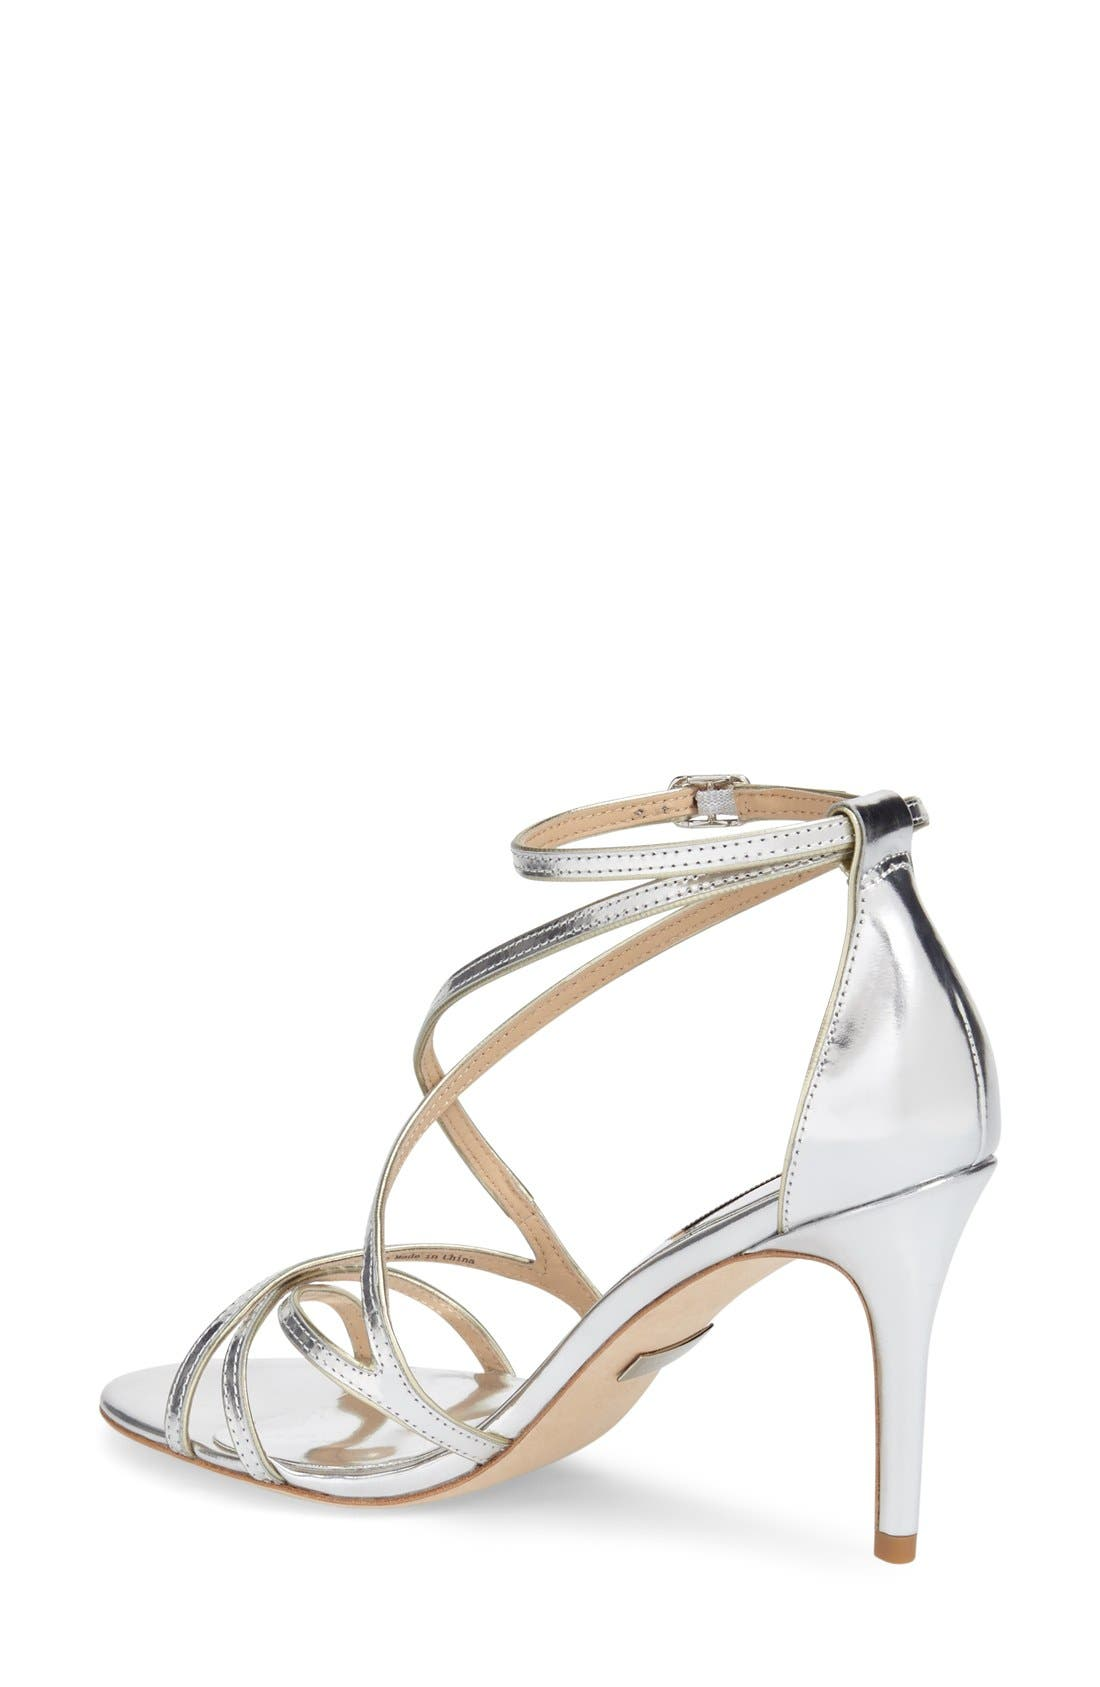 BADGLEY MISCHKA COLLECTION, Badgley Mischka 'Lillian' Metallic Evening Sandal, Alternate thumbnail 3, color, 046